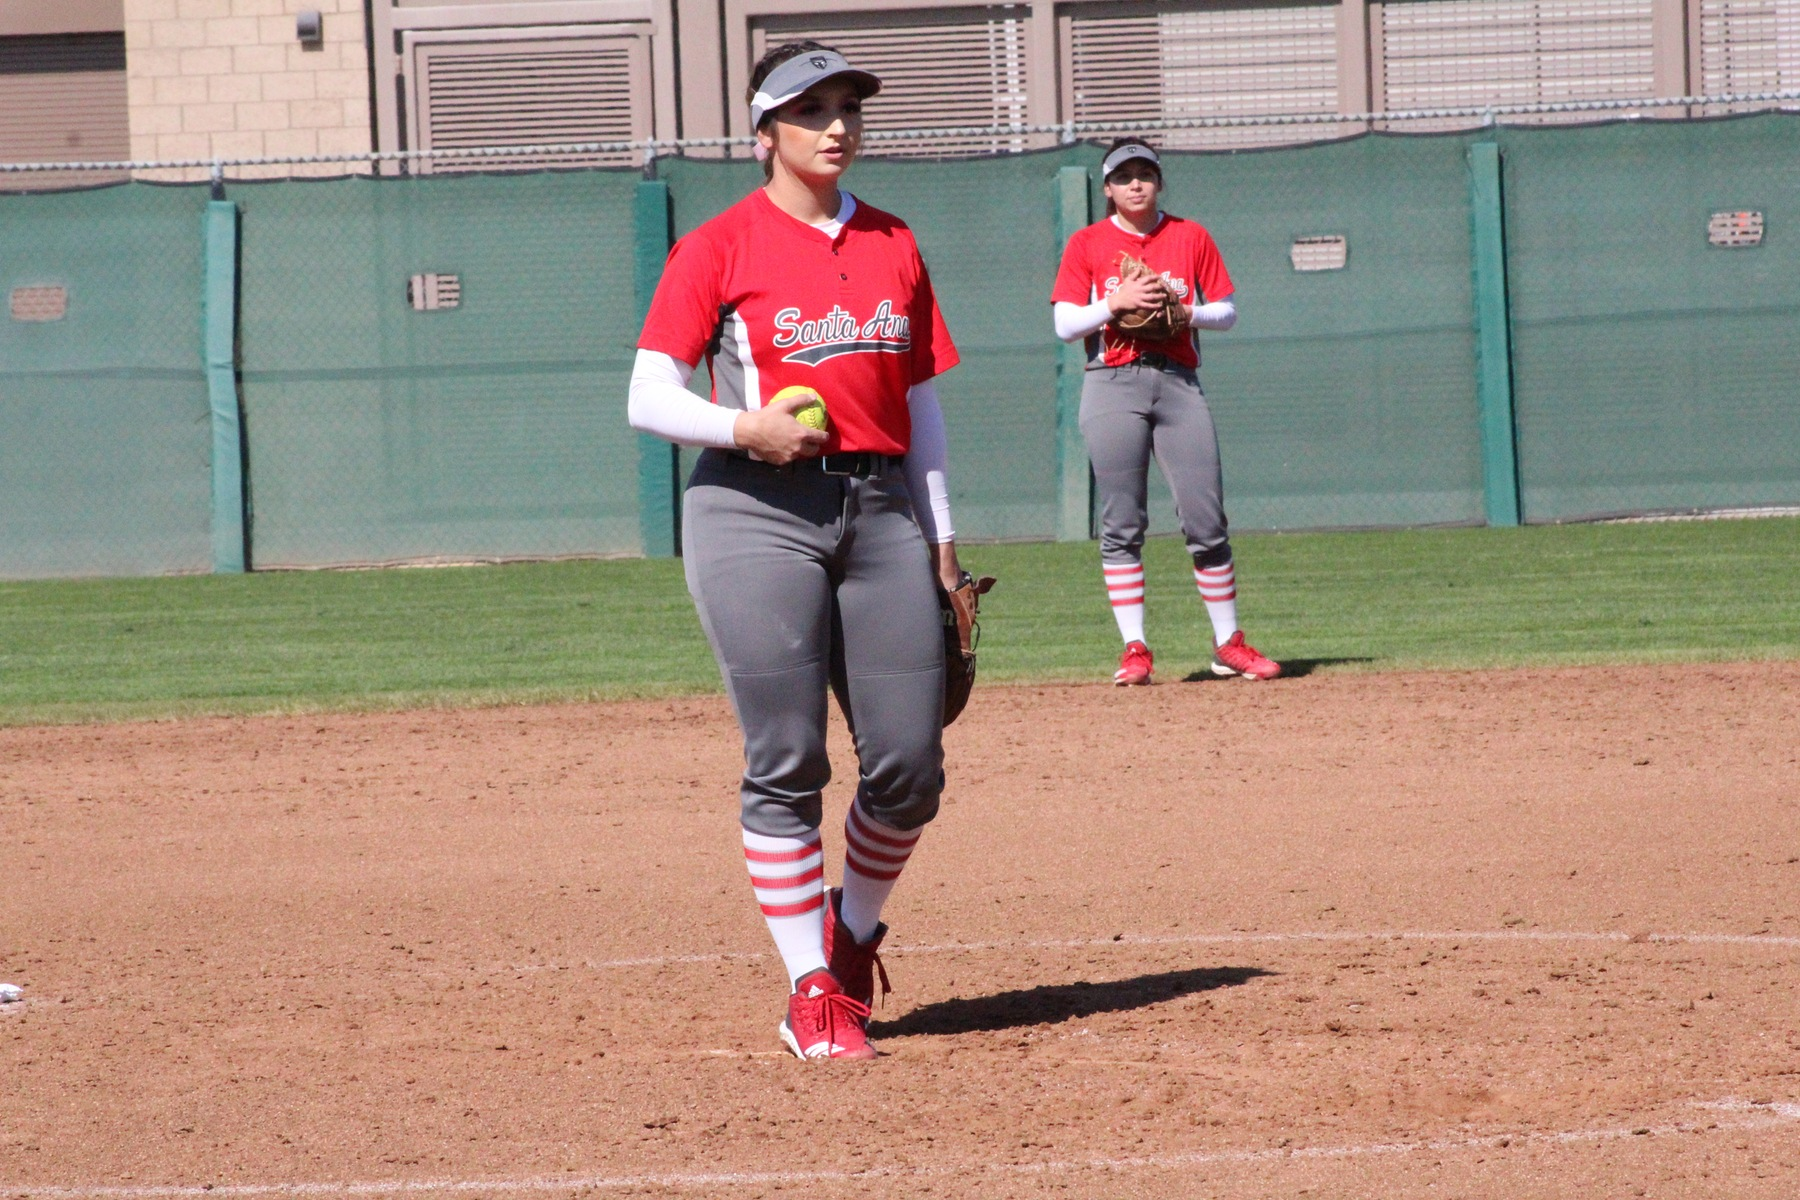 Dons Fall in Pitchers Duel with Southwestern